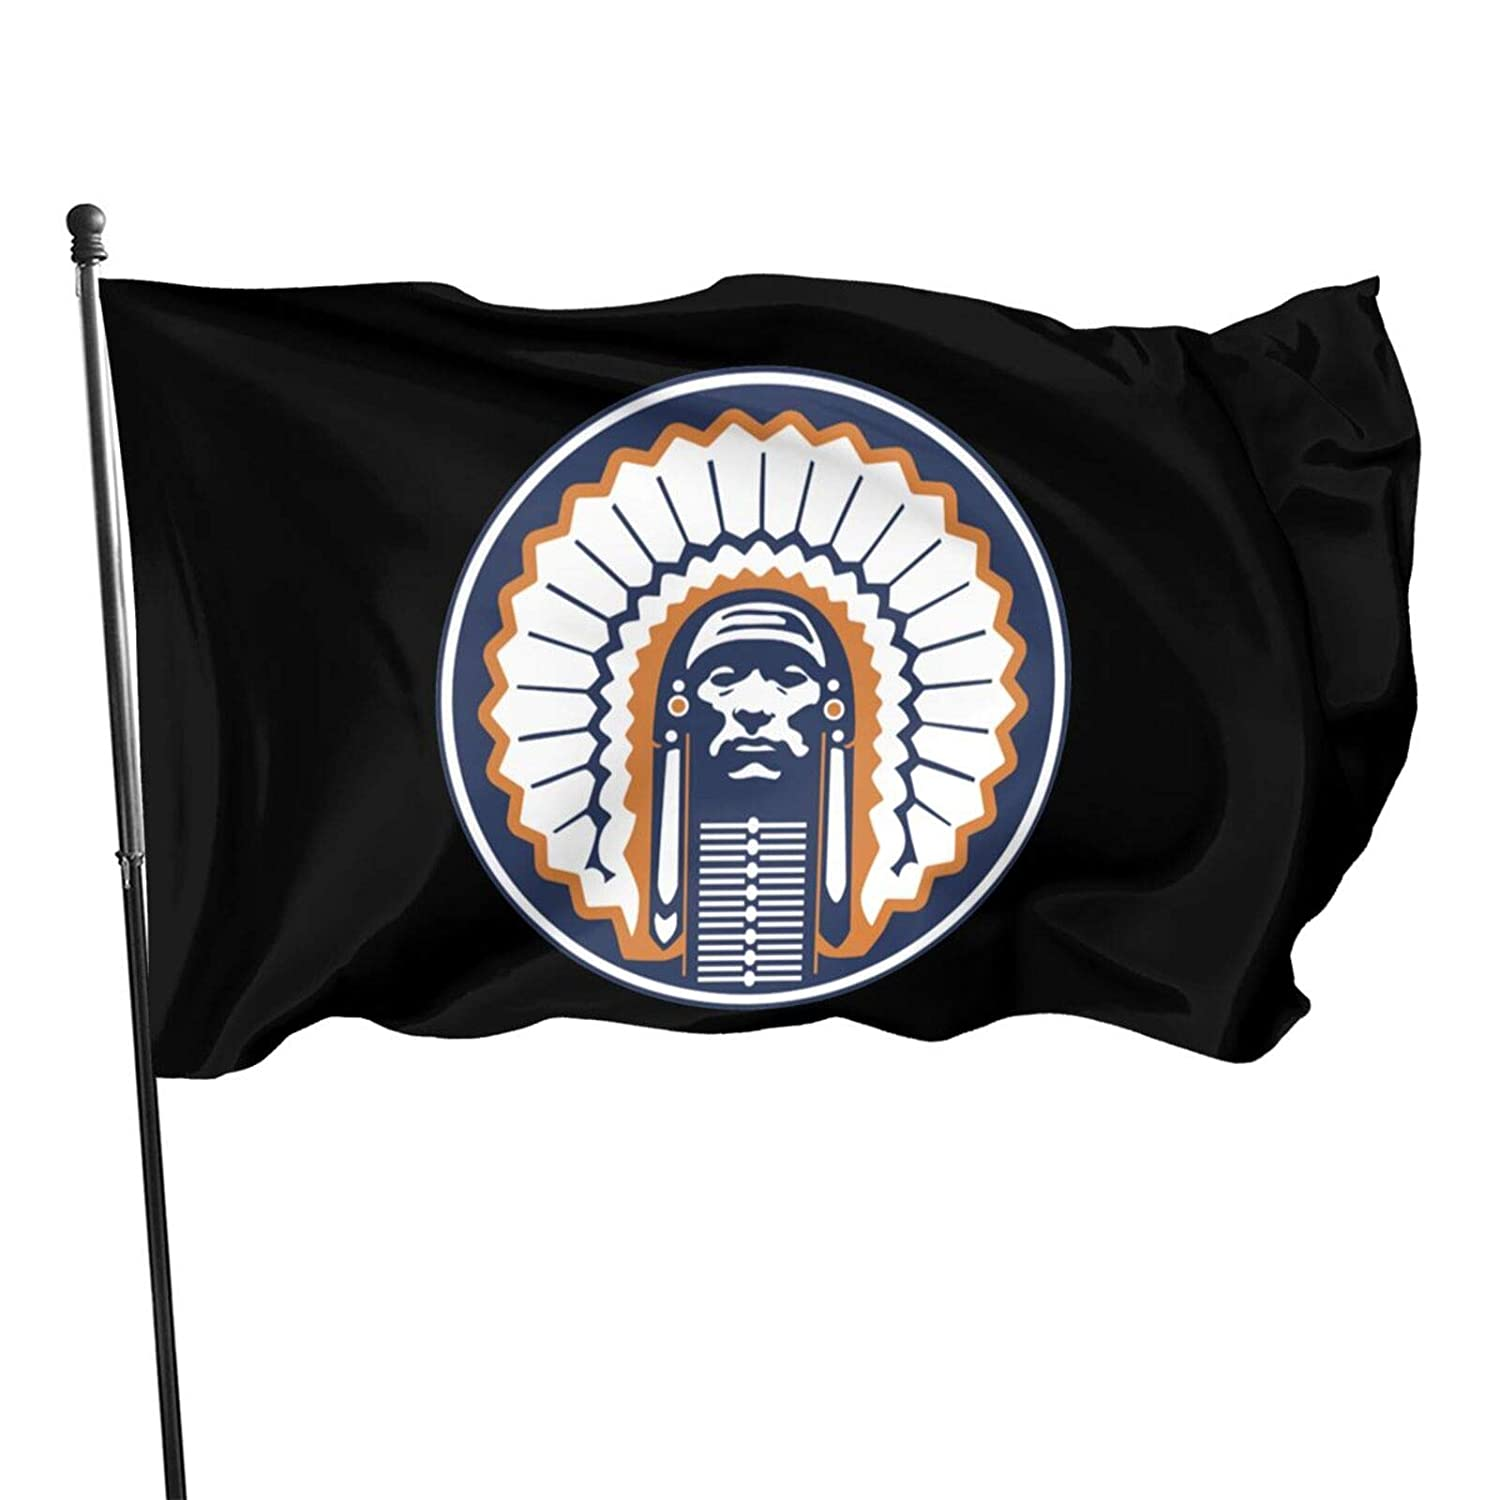 Illinois Fighting Illini Fans 3 X 5 Ft Garden Flags Fashion Banners Indoor And Outdoor For Party Decorations,Parades,Election Day Celebration Event